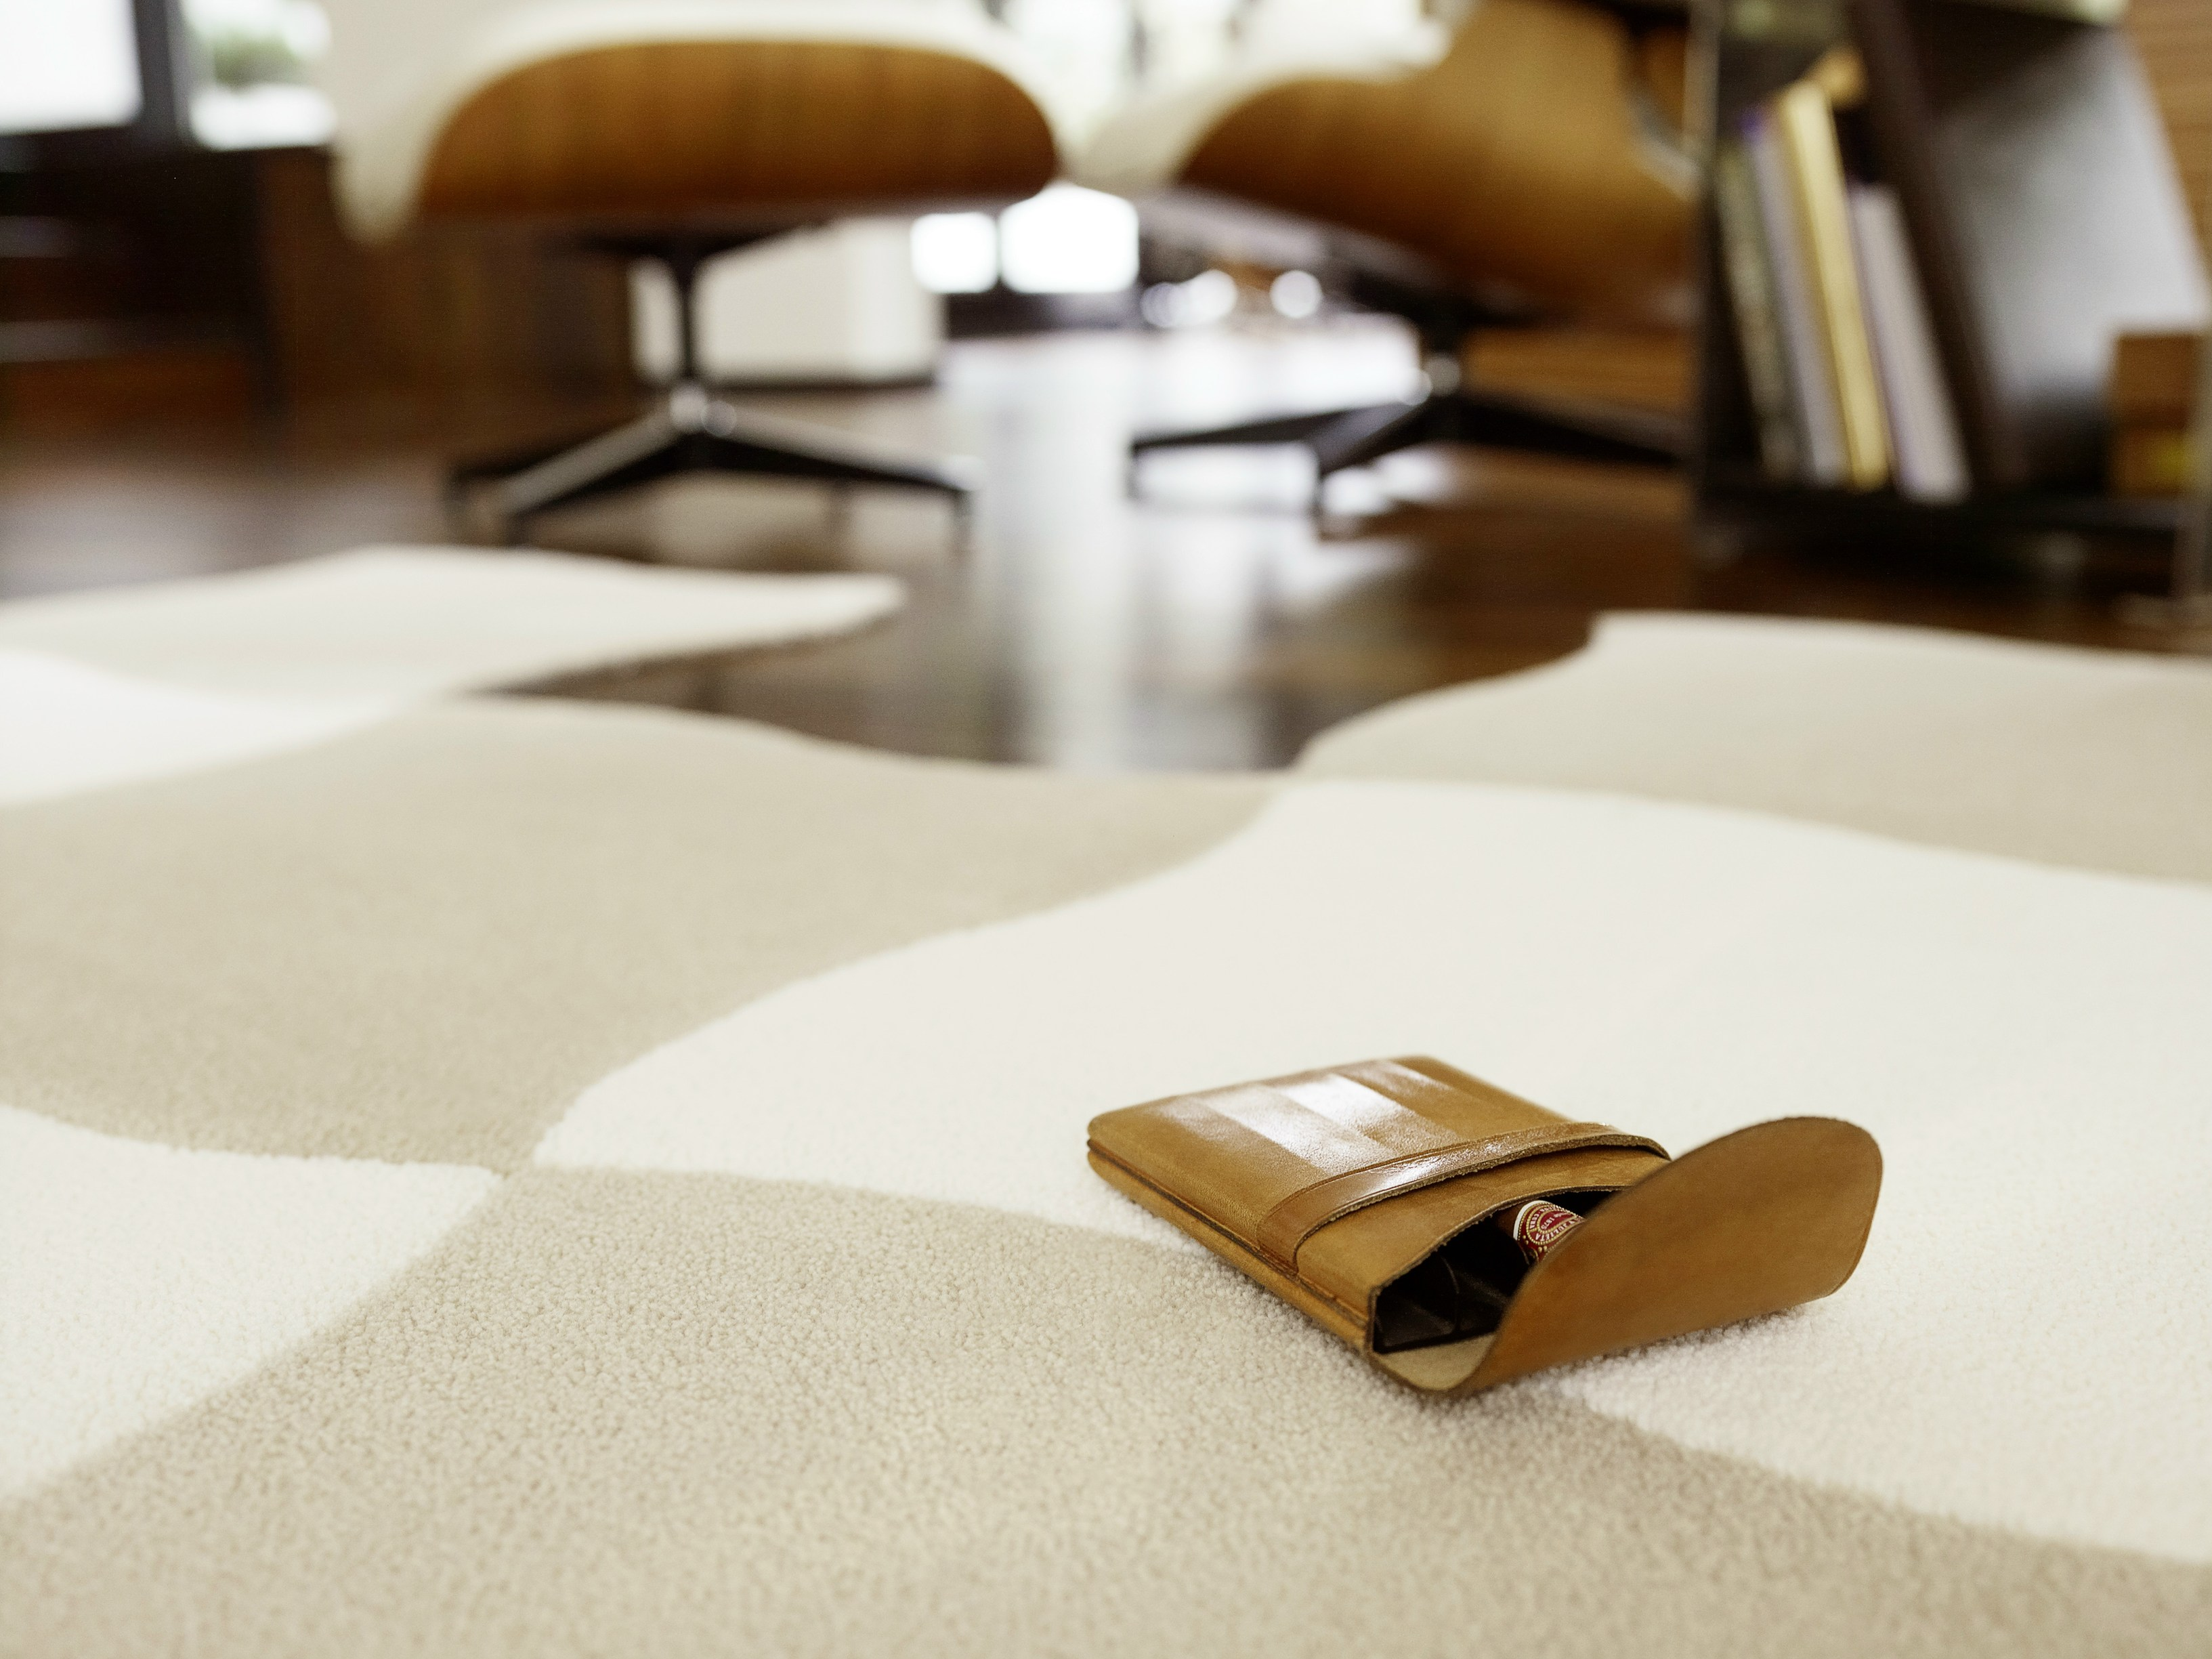 Curve by vorwerk co teppichwerke - Tappeto componibile ...